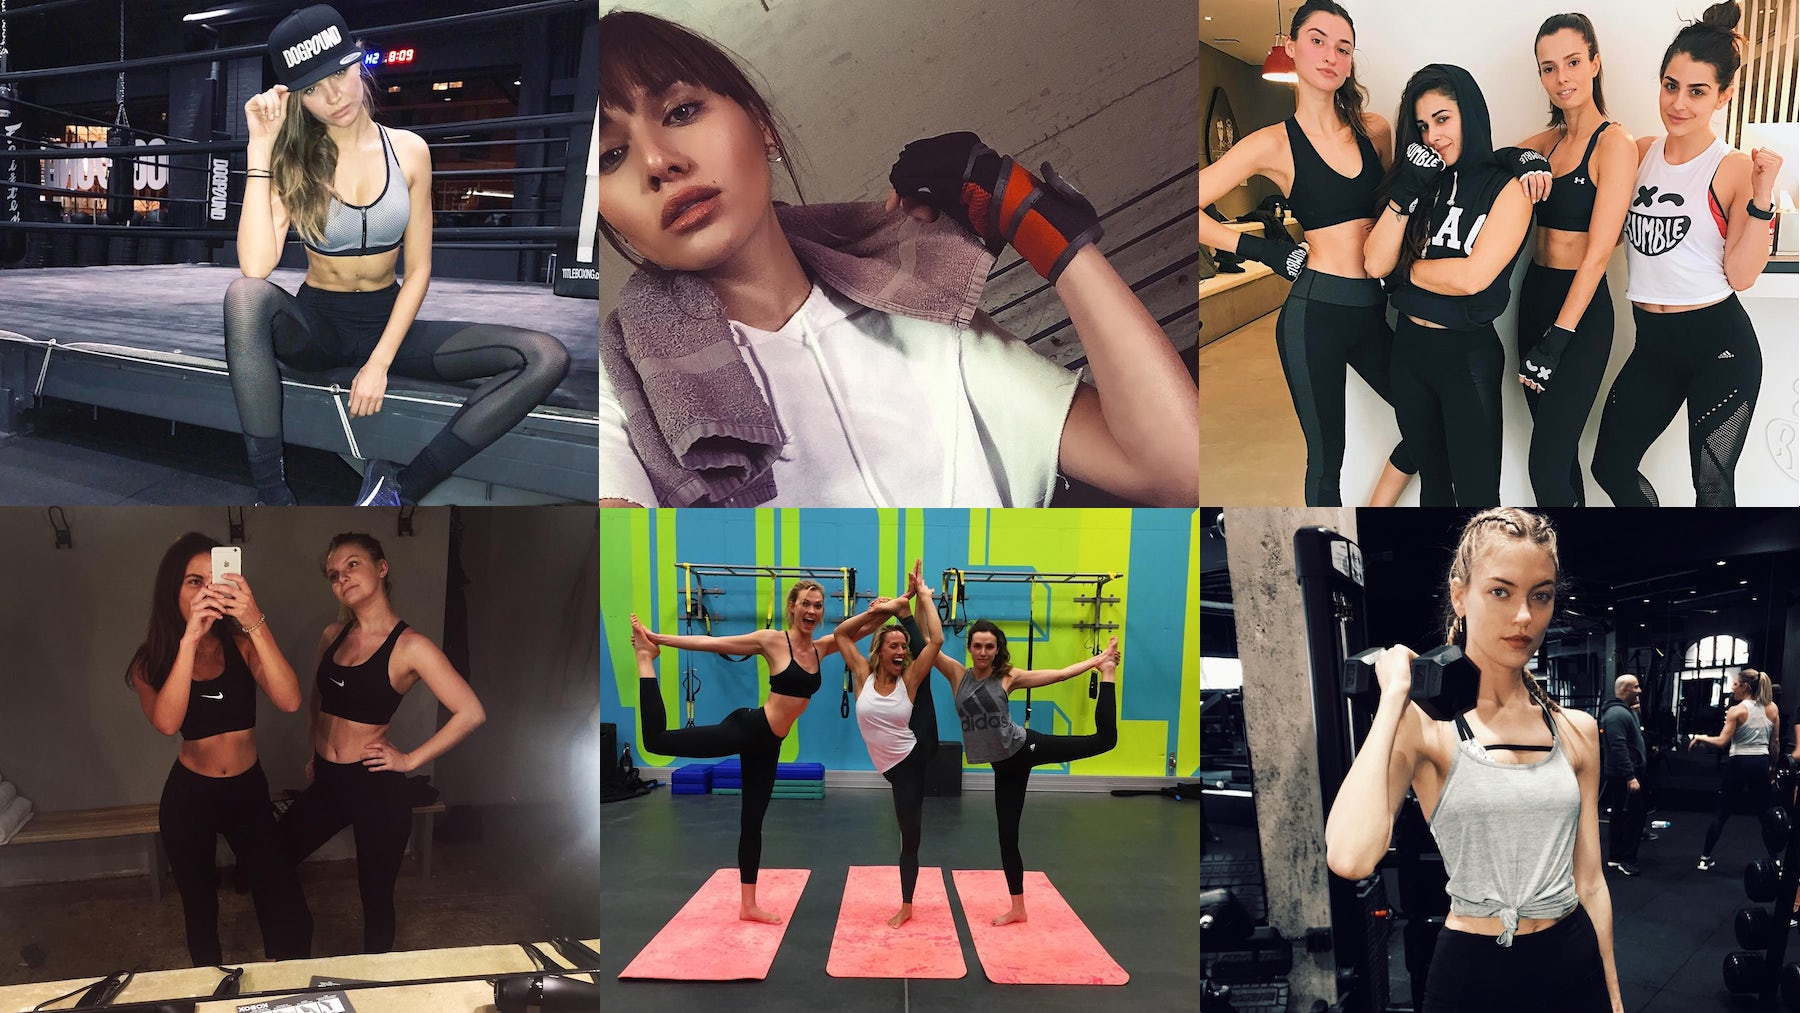 Clockwise, from left: Instagram/@josephineskriver, @natalieoffduty, @rumble_boxing, @marthahunt, @karliekloss, @georgiadaintree